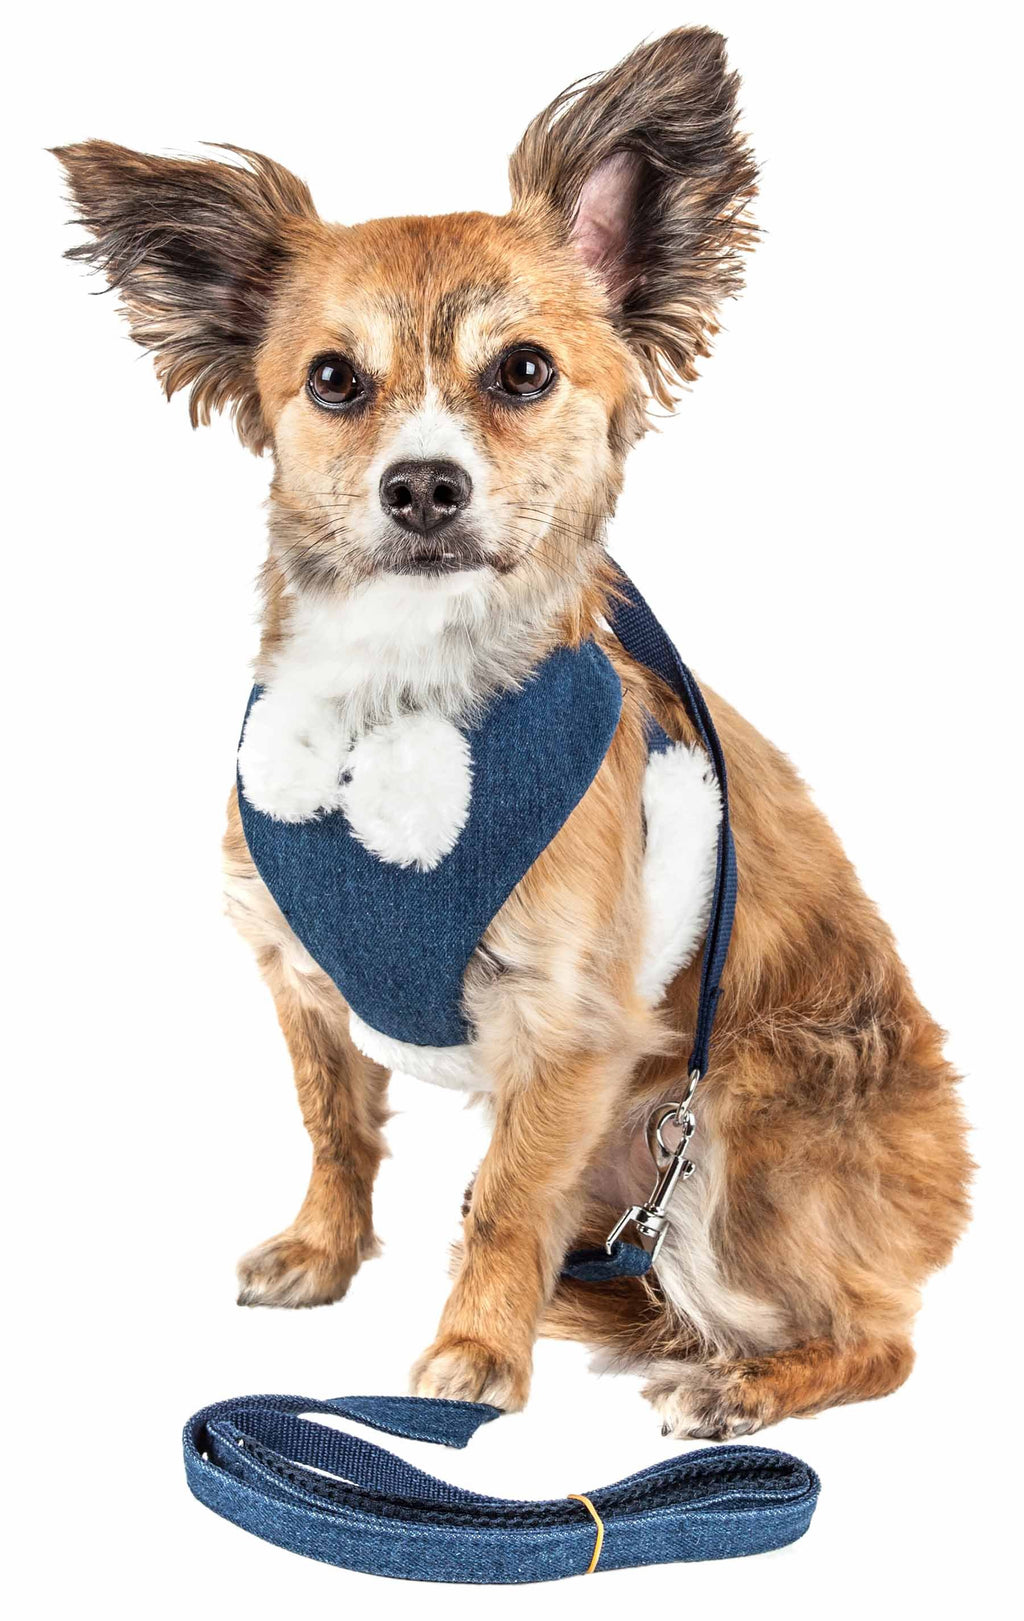 Pet Life ® Luxe 'Pom Draper' 2-In-1 Mesh Reversed Adjustable Dog Harness-Leash W/ Pom-Pom Bowtie